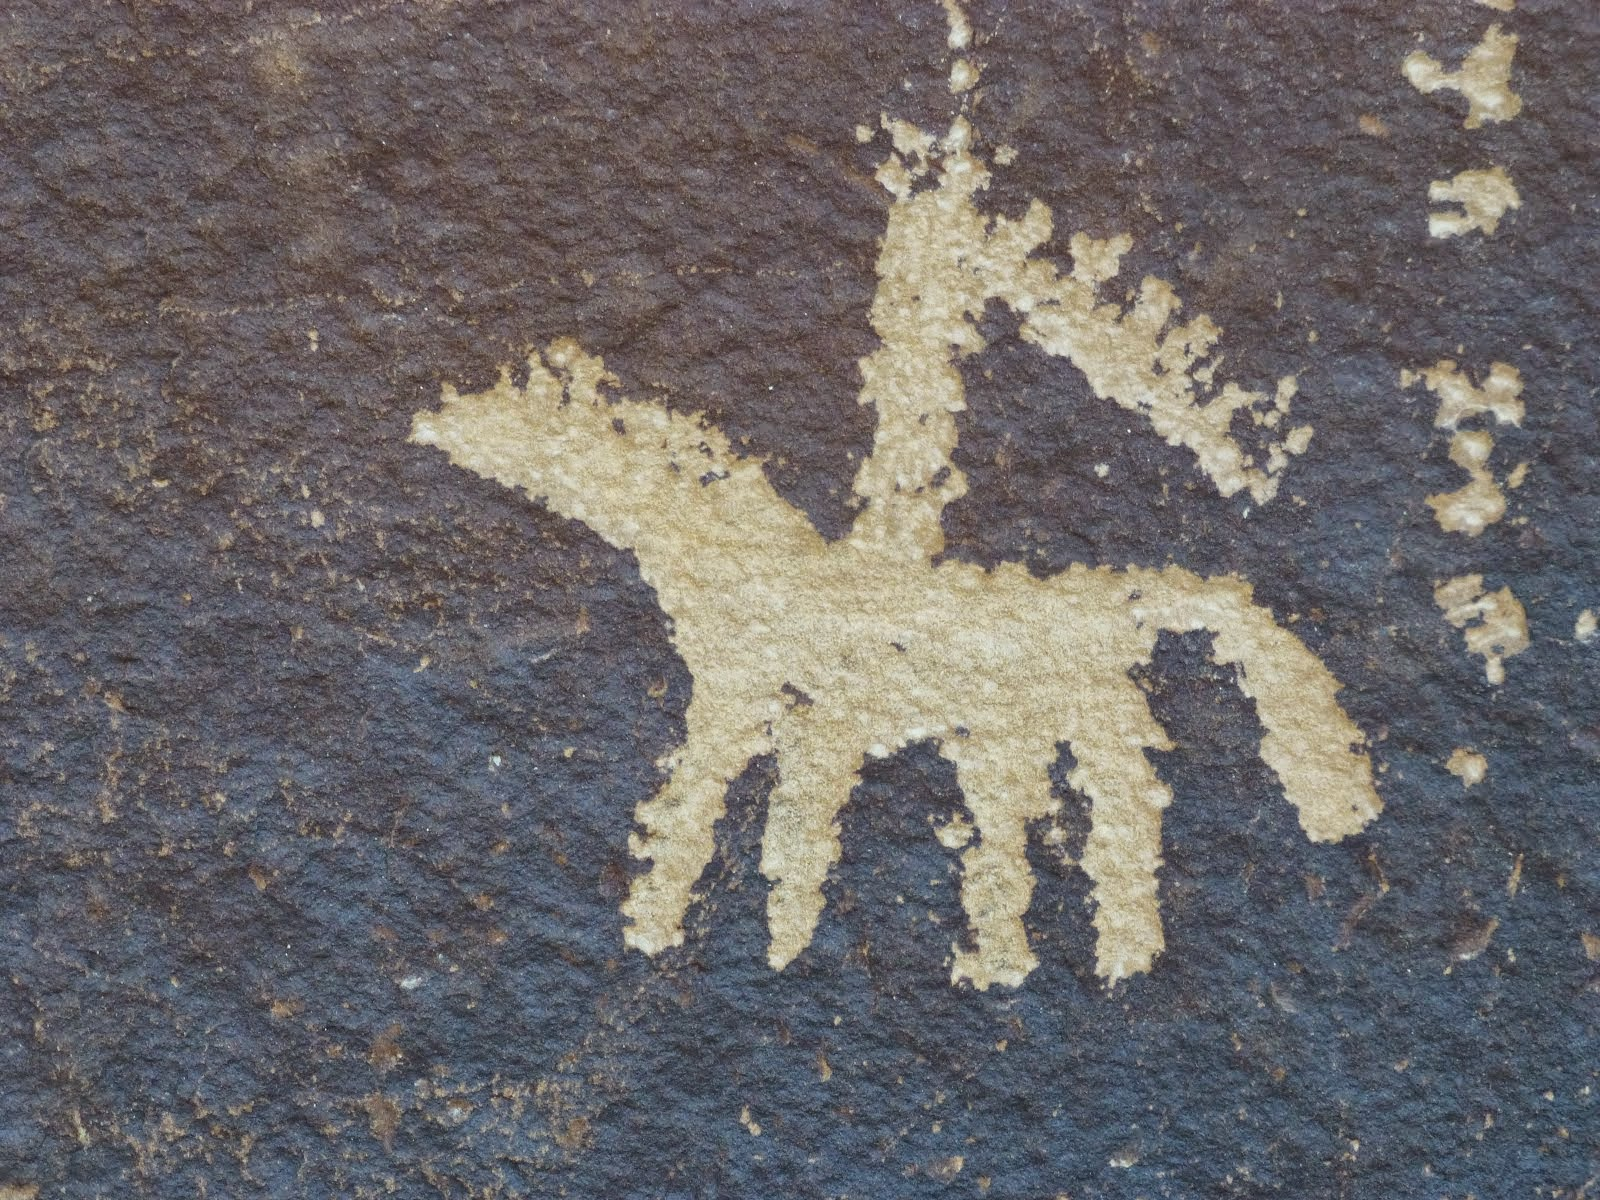 Ancient Art in Utah's Nine Mile Canyon